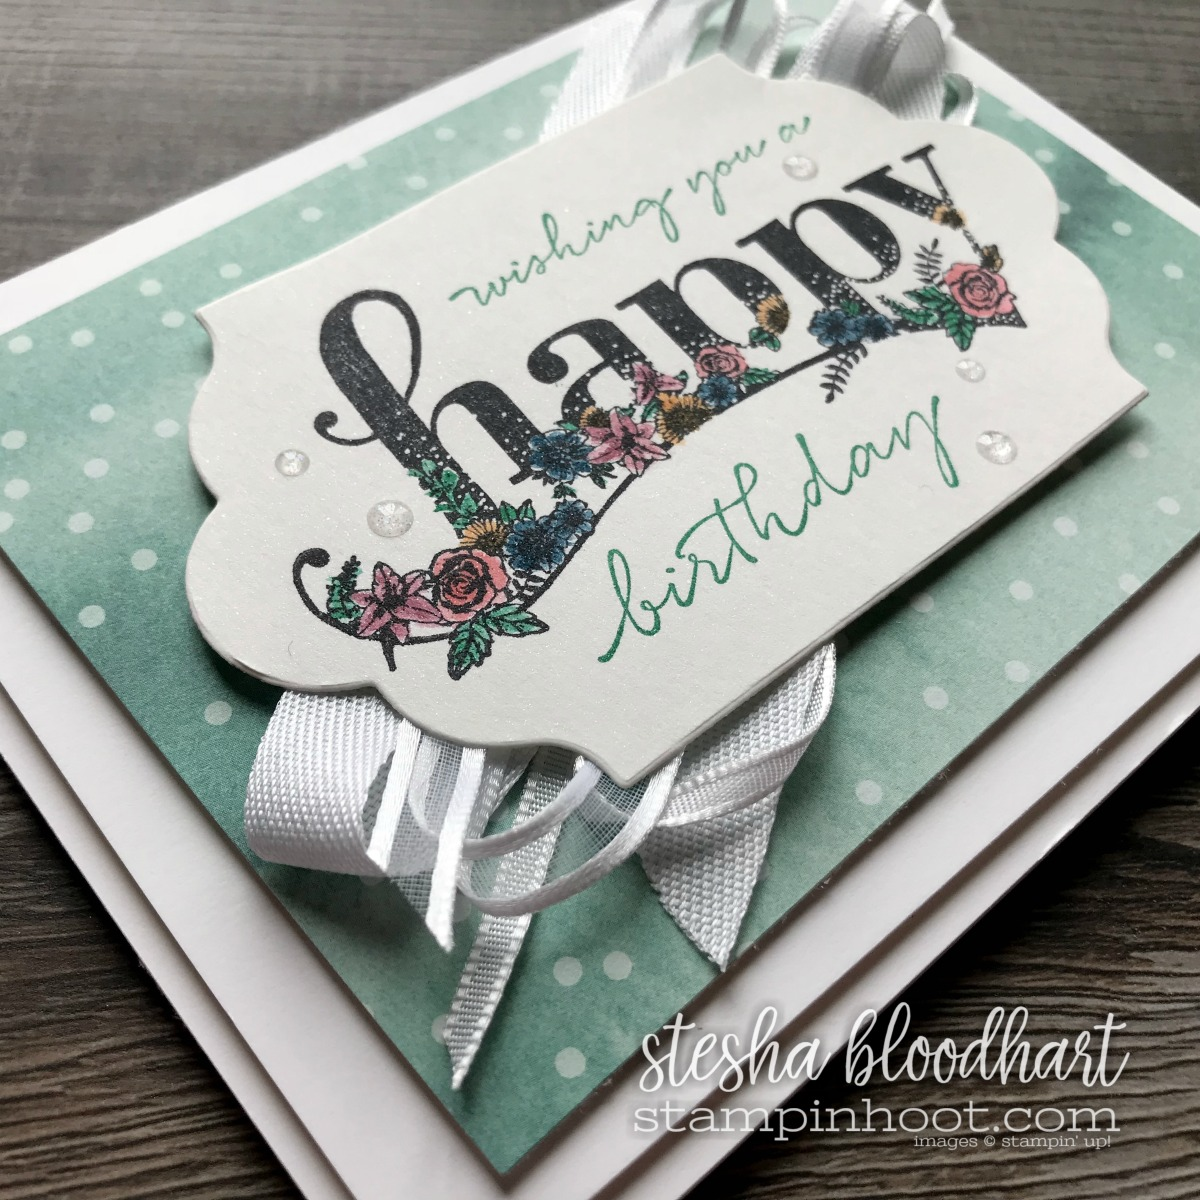 Happy Wishes by Stampin' Up!, A Level 2 Sale-a-Bration Set Free with a $100 Purchase for #tgifc147 Card Created by Stesha Bloodhart, Stampin' Hoot! #steshabloodhart #stampinhoot